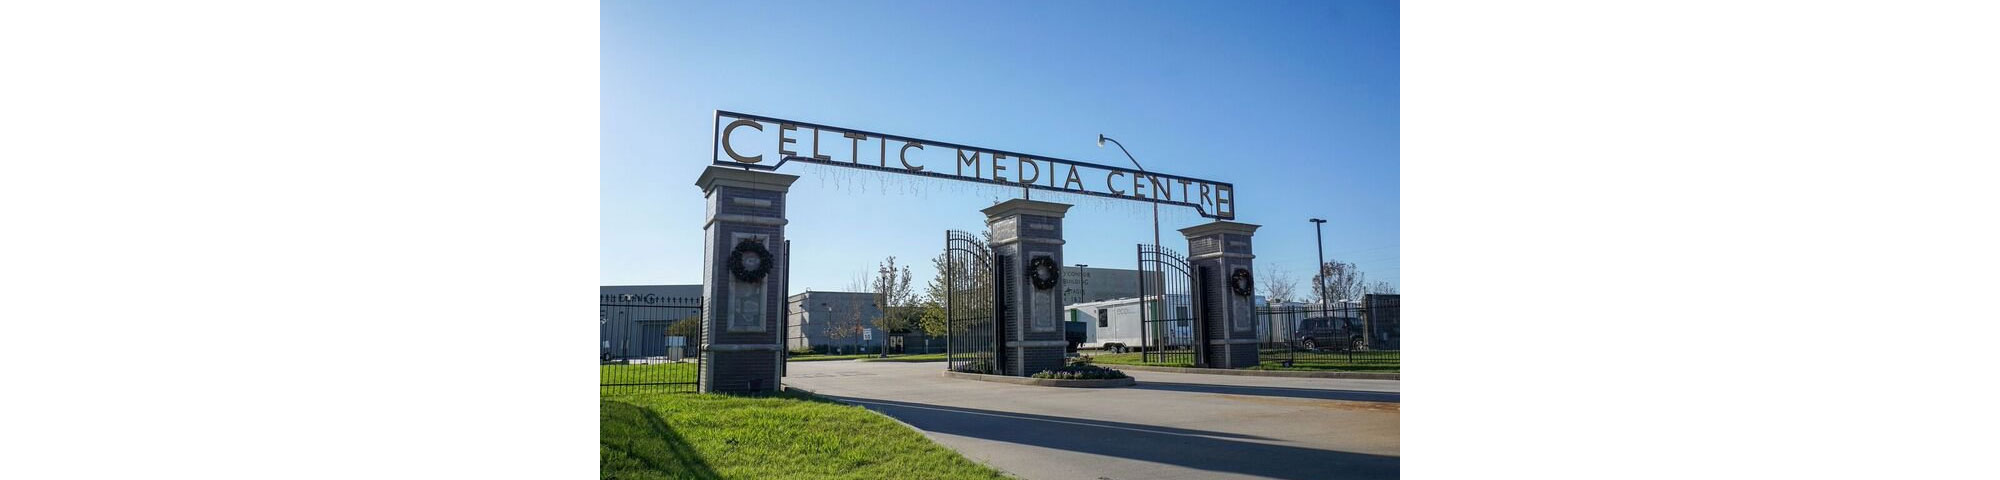 The Celtic Media Centre entrance.